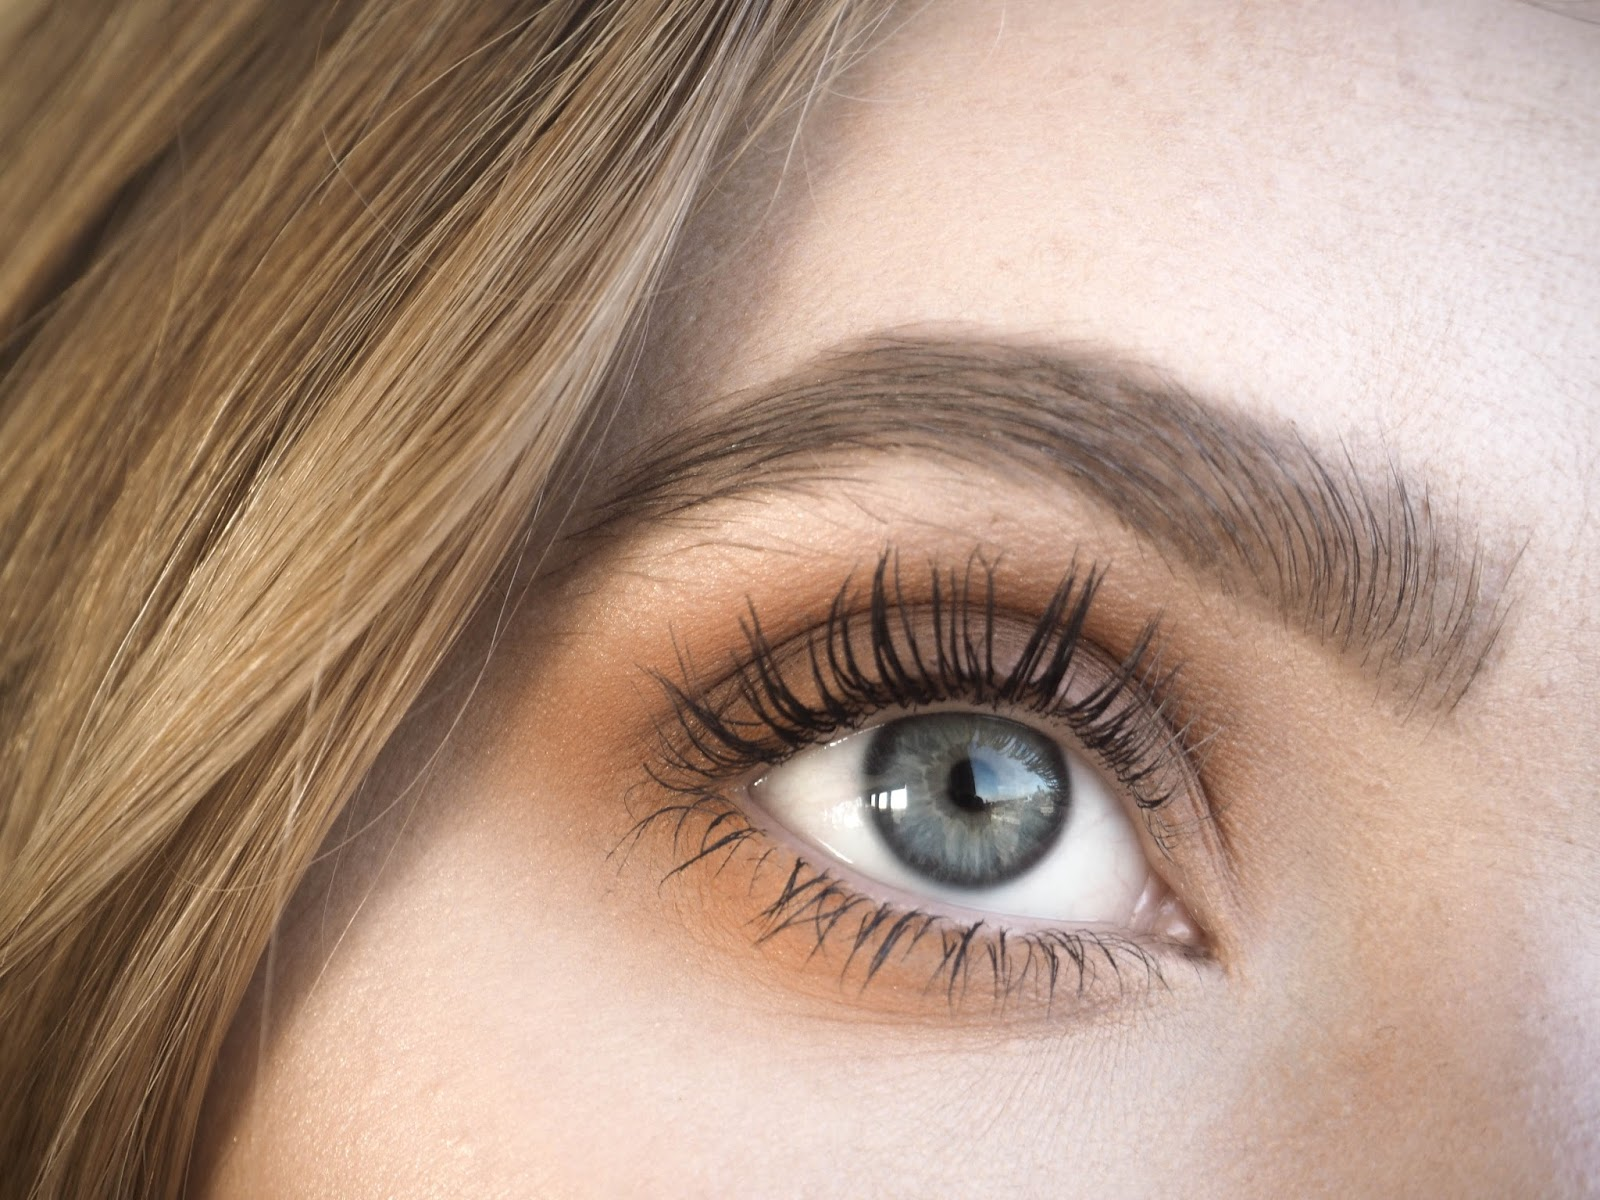 LVL Lashes With Nupura Spa - Bitchin' Blonde